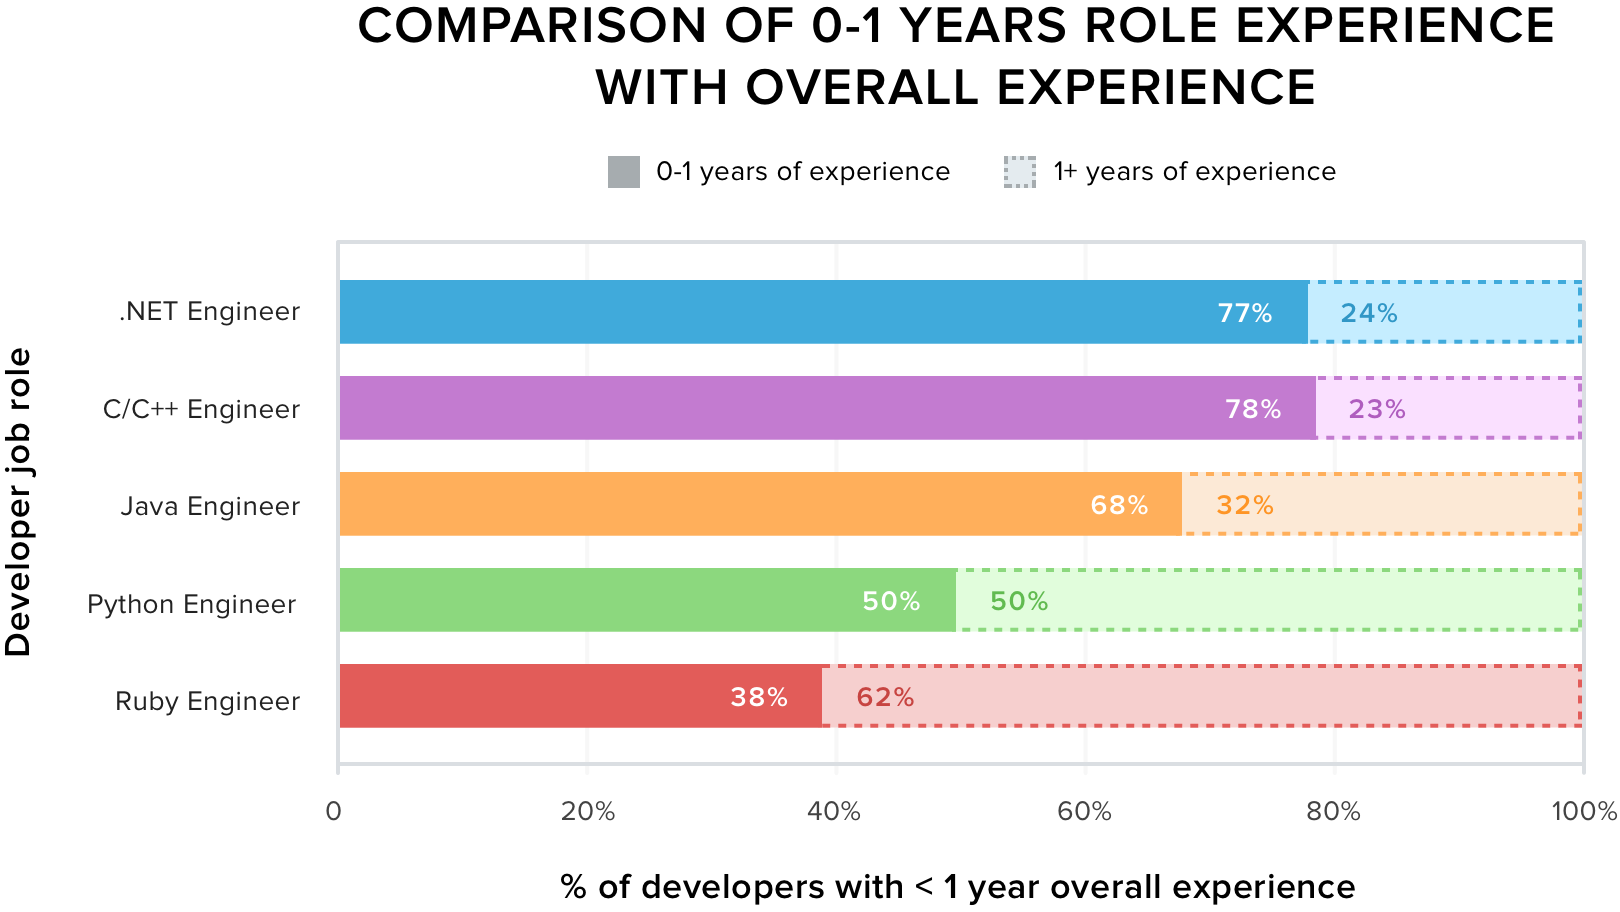 Comparison of 0-1 Years Experience with Overall Experience